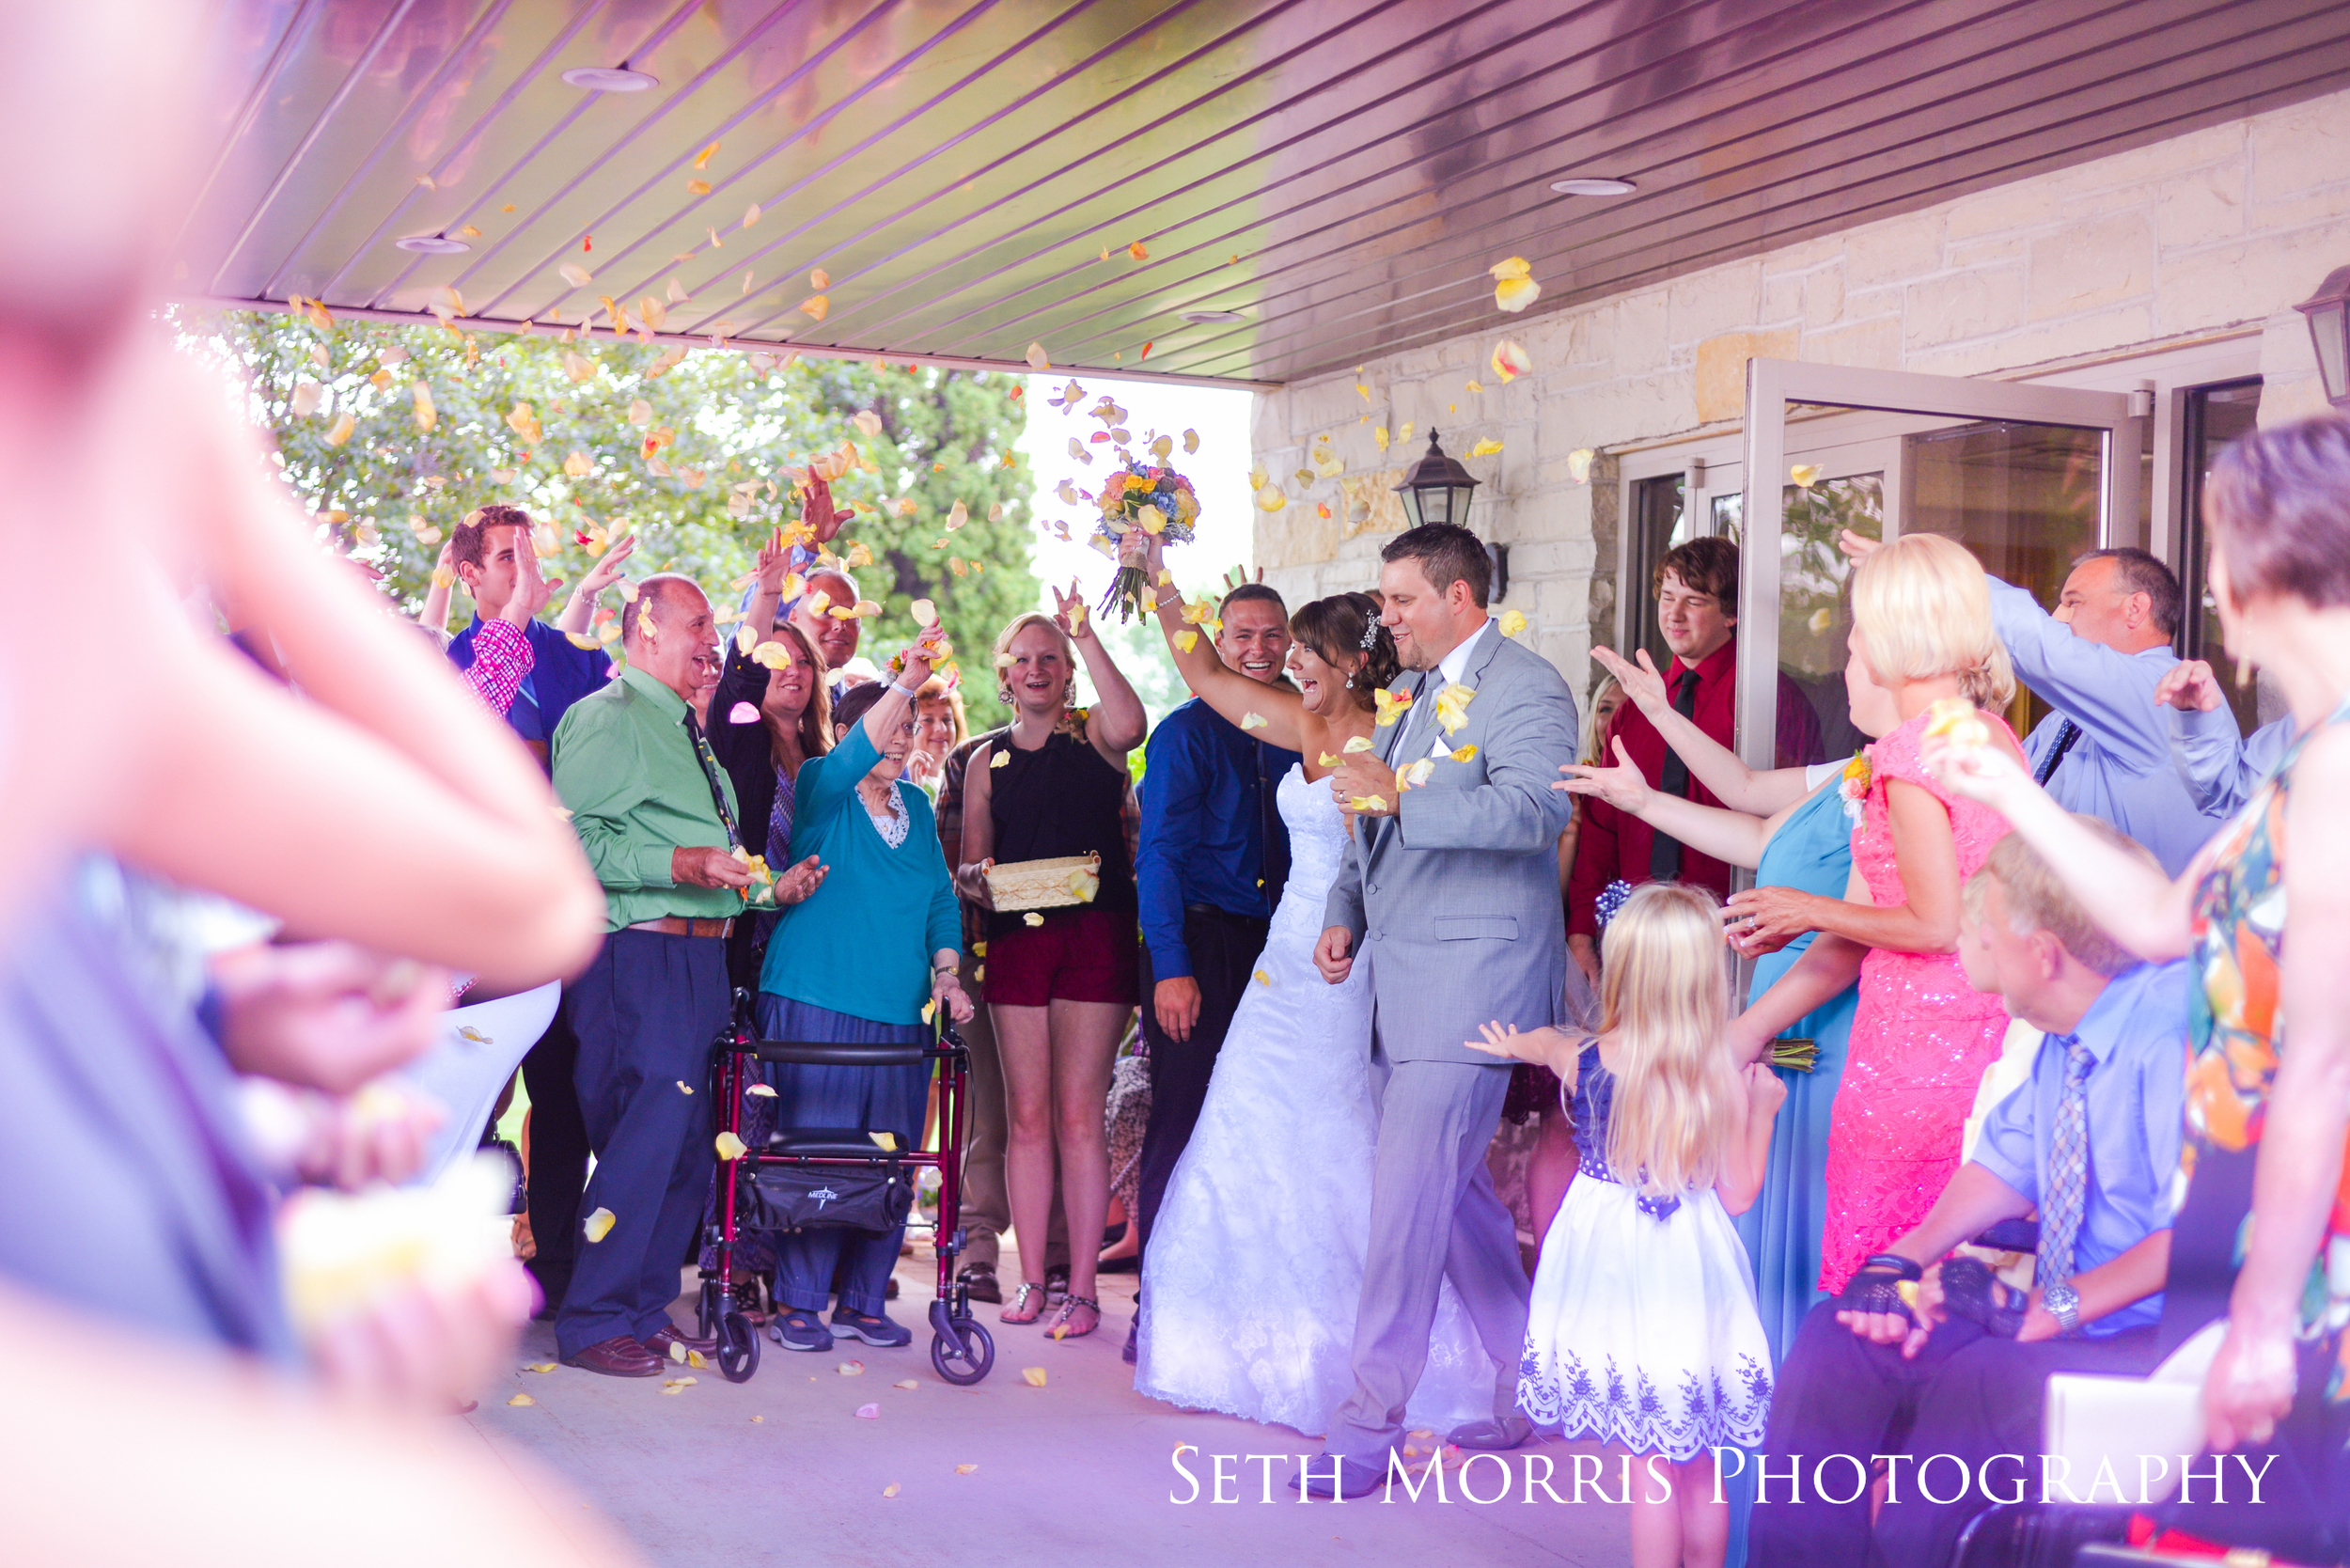 hornbaker-barn-wedding-photo-princeton-photographer-27.jpg